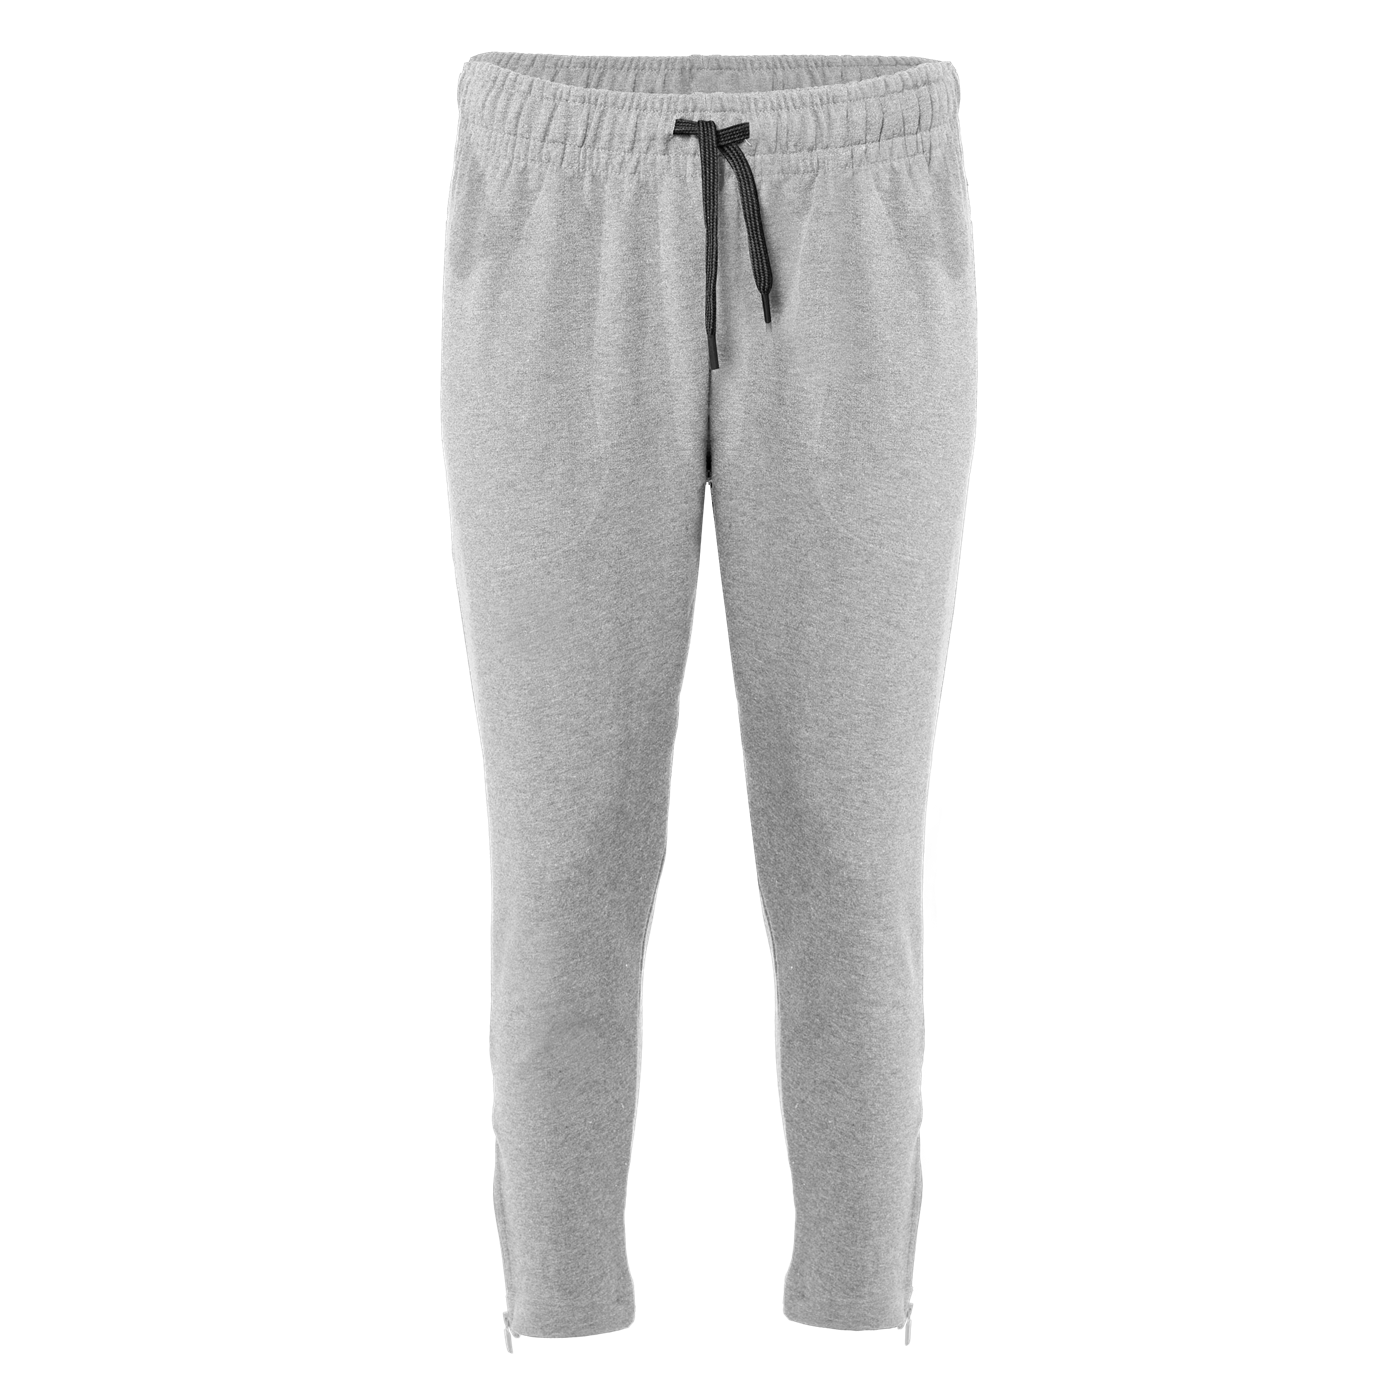 1071_Fitflex_Womens_Ankle_Pant_OX_F